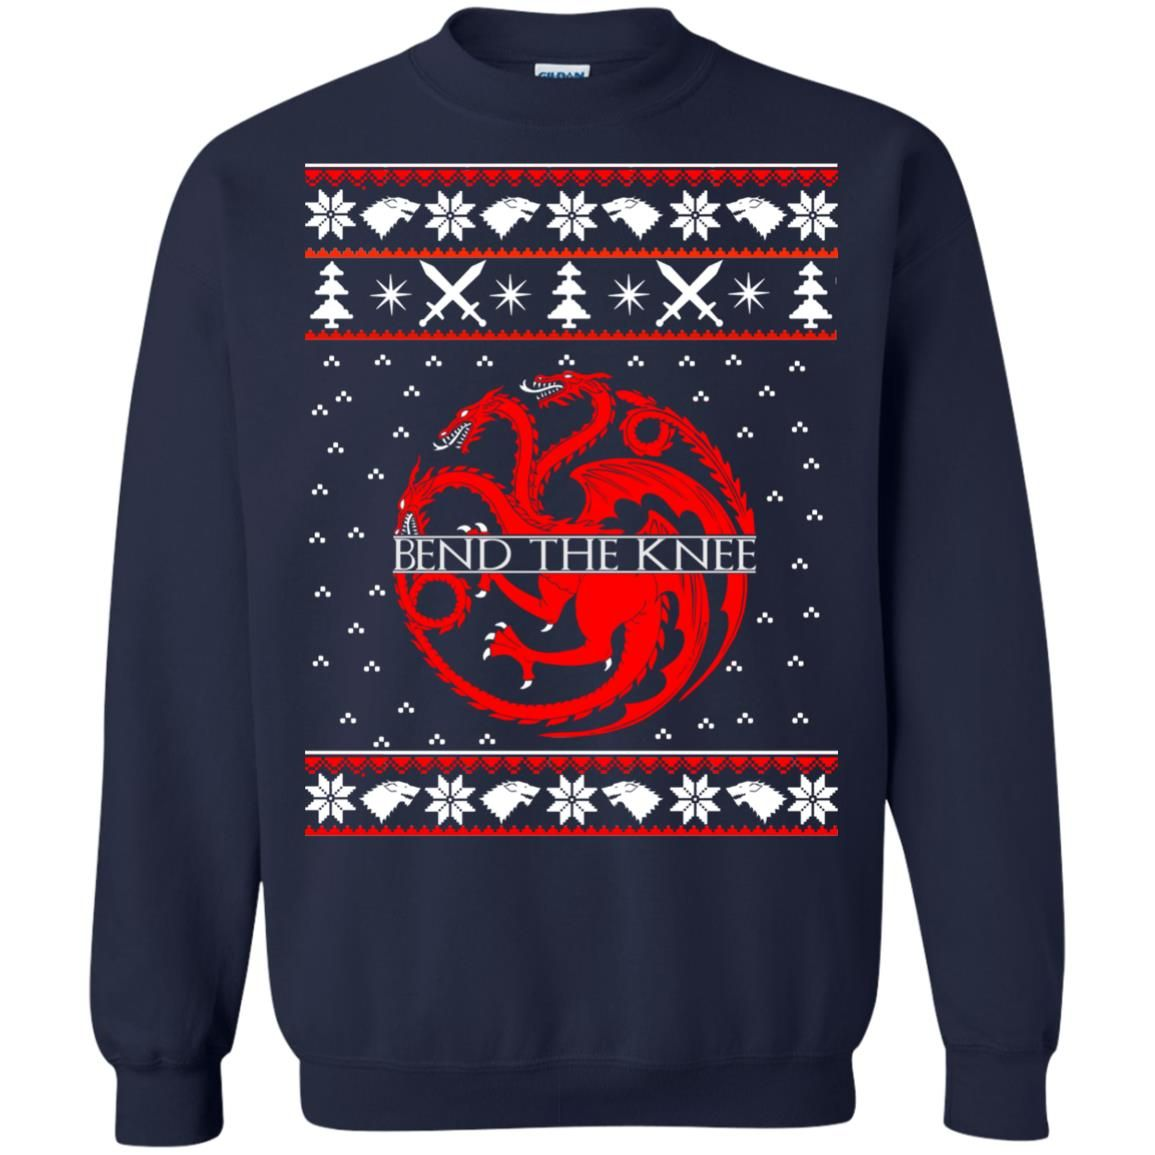 image 869 - Game of Thrones Bend the knee Christmas sweater, long sleeve